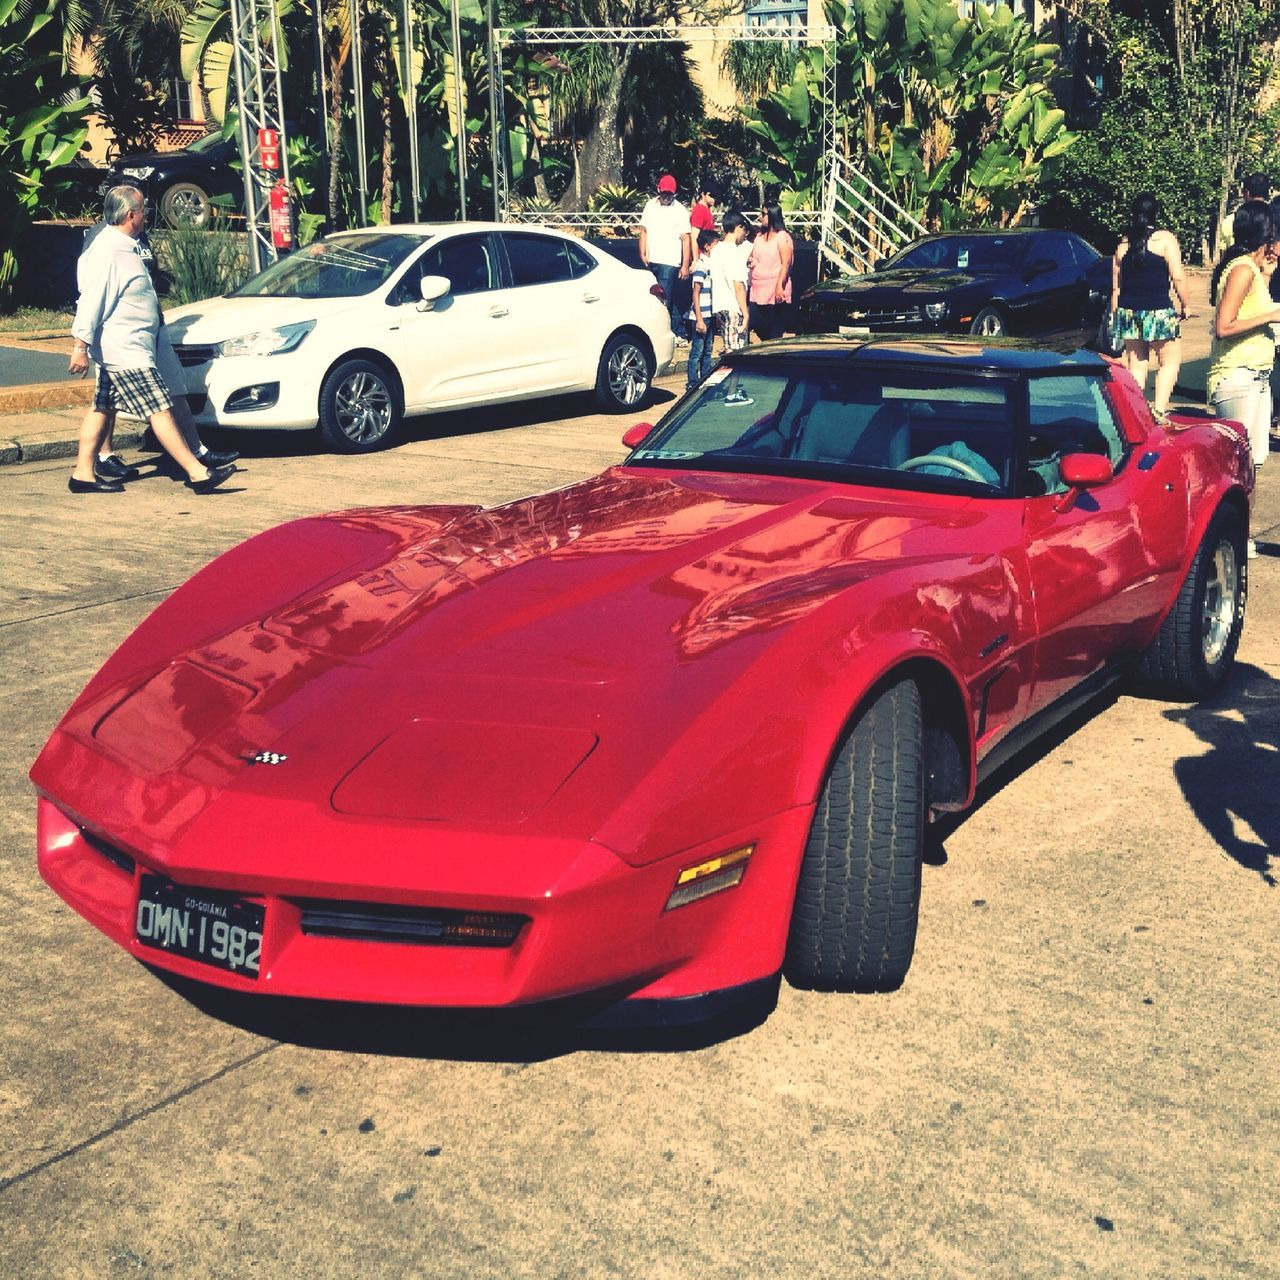 1982 Corvette C4 Eyeem Old Time Cars Official Photos Club 🚘🚕🚗🚕🚘 Classic Car Vintage Taking Photos